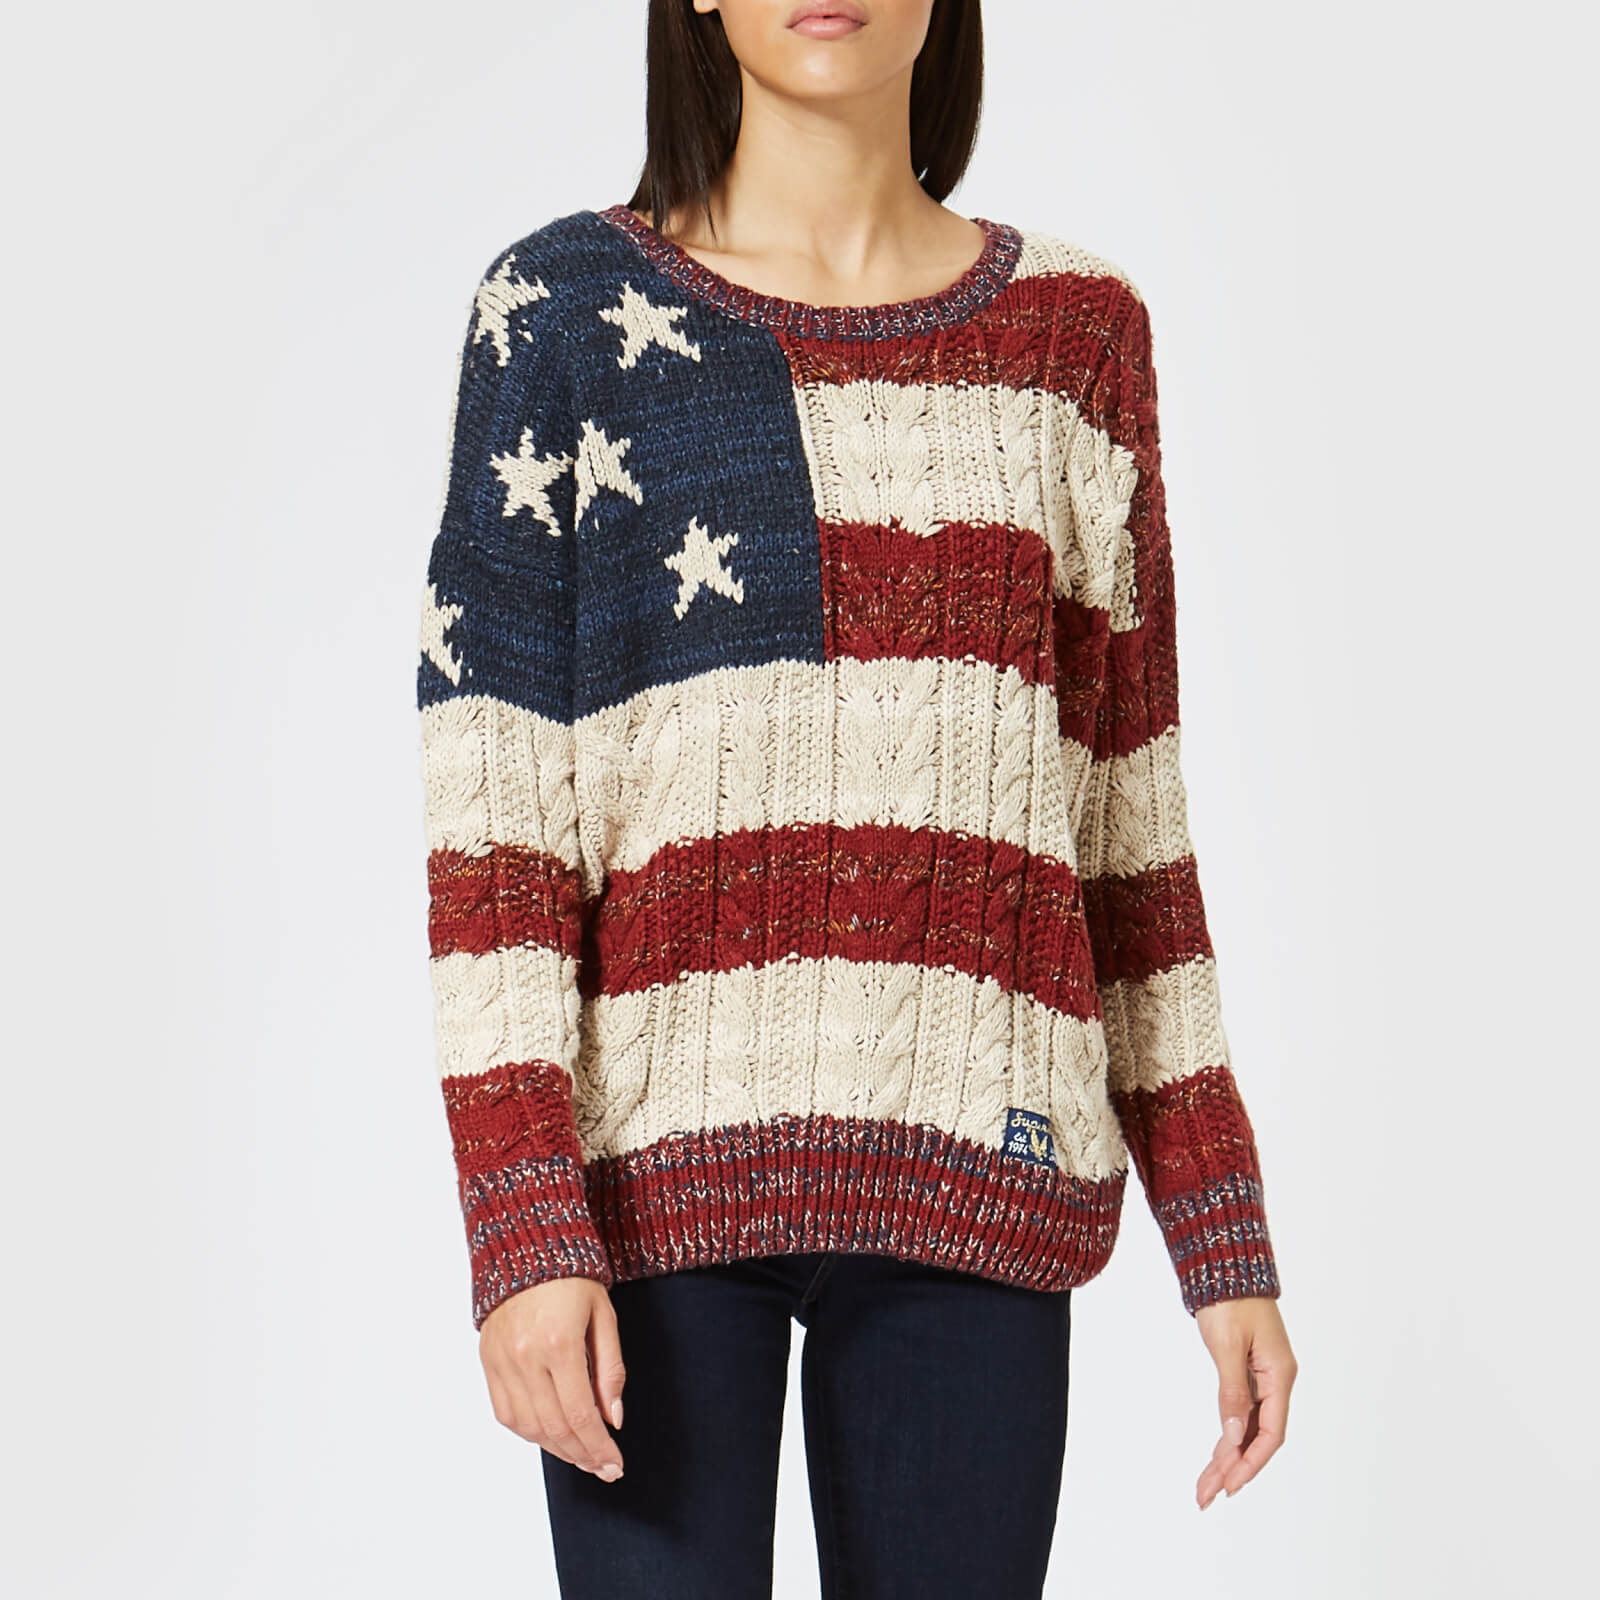 70f48d4cd Superdry Women s Americana Cable Knit Jumper - Navy Burnt Red Ecru Womens  Clothing